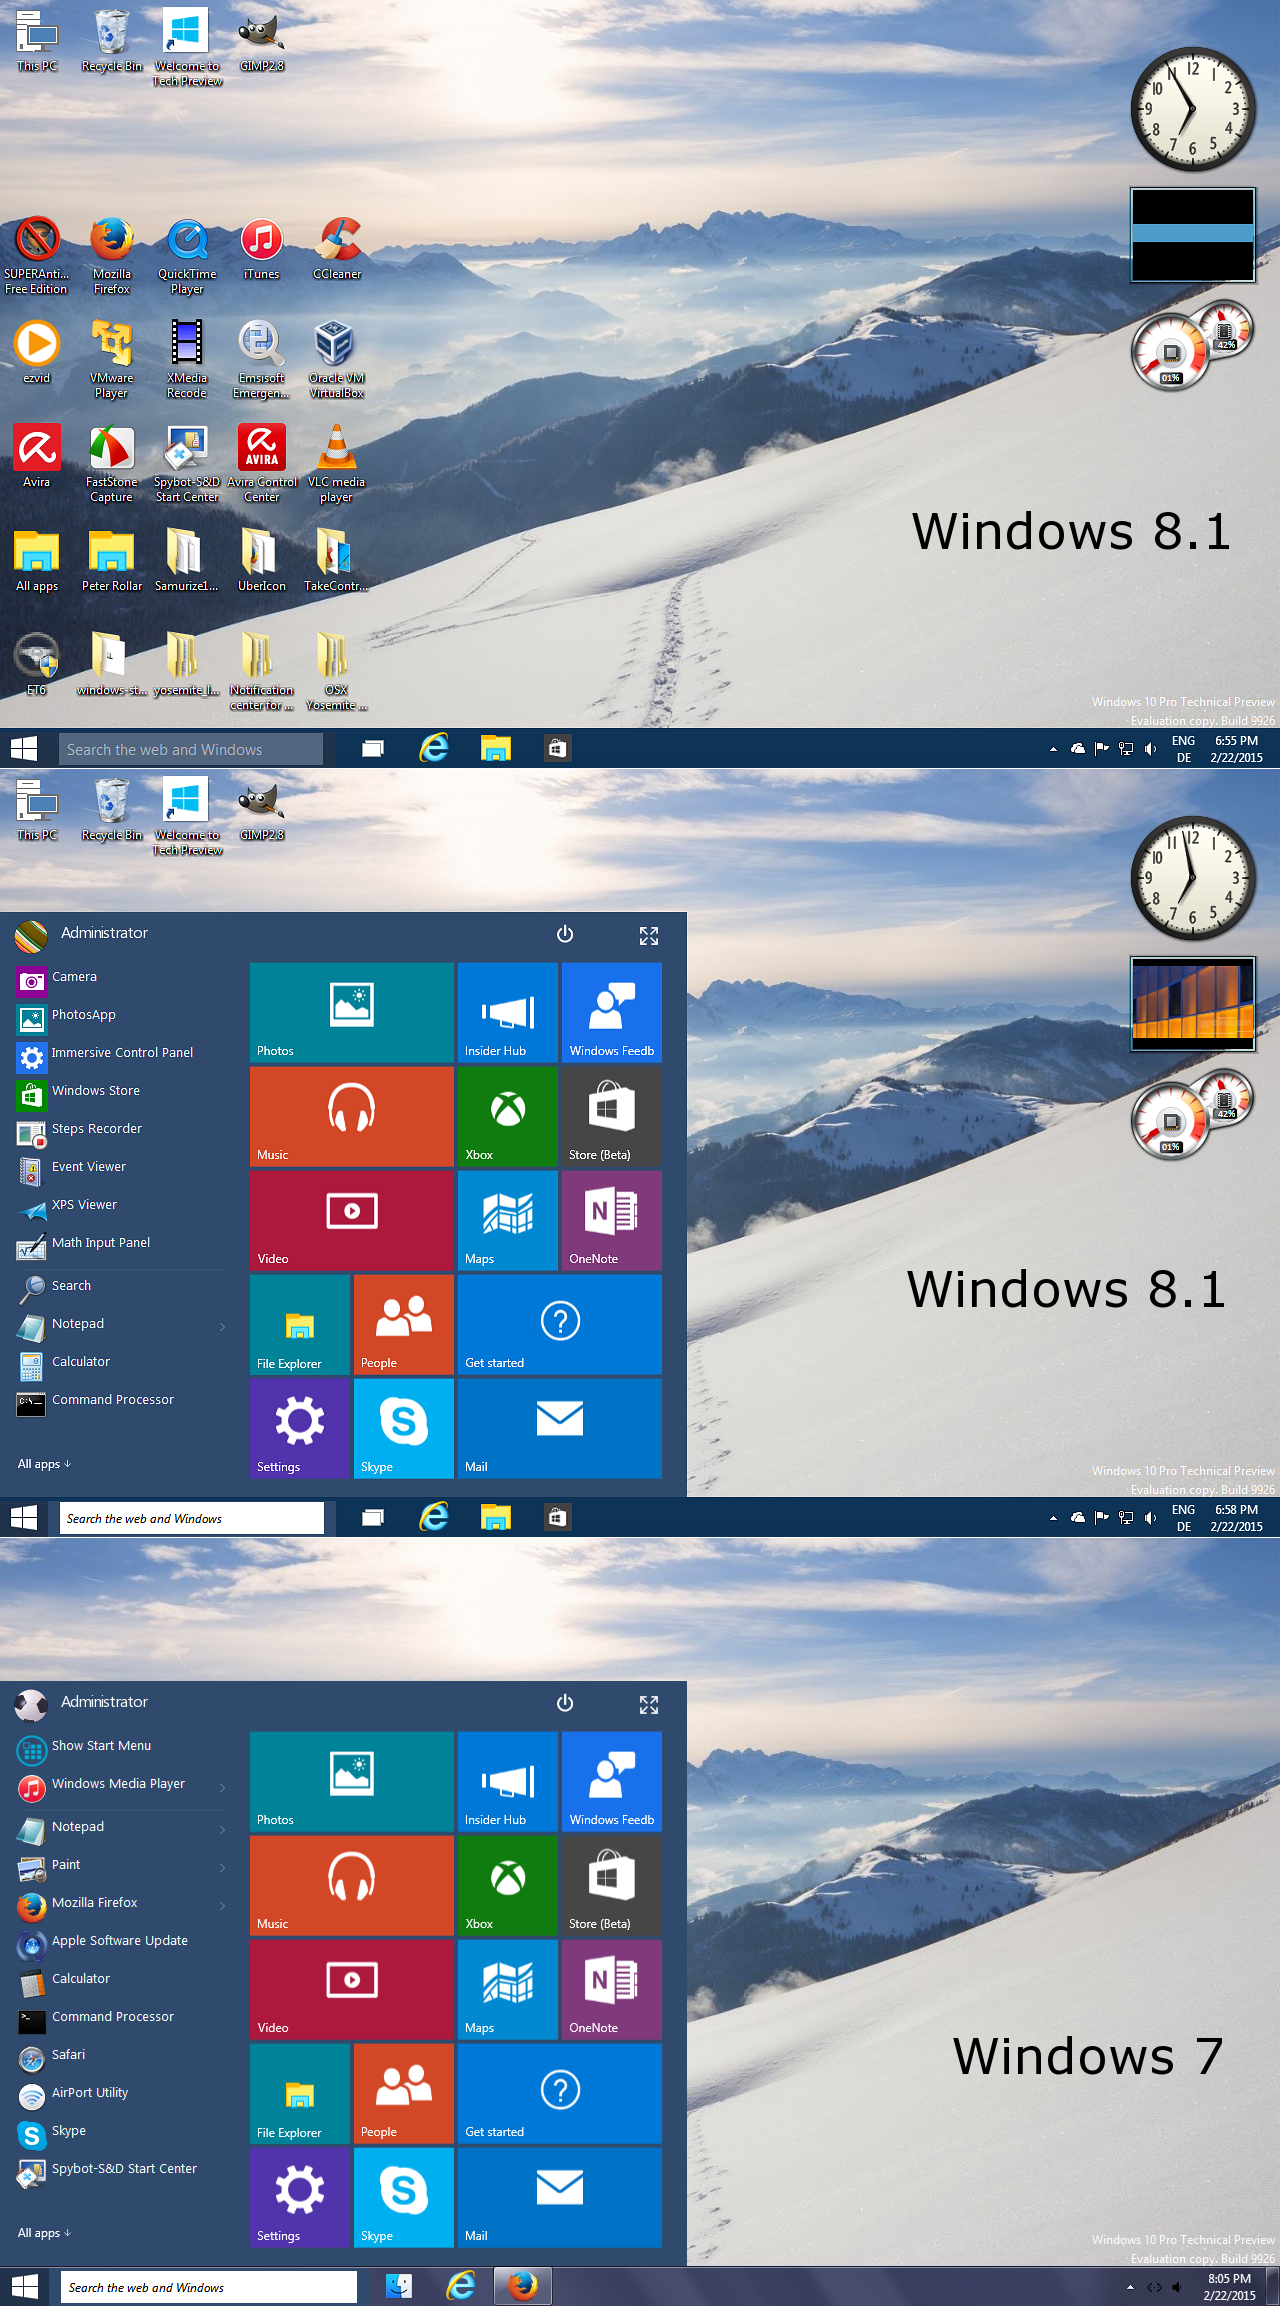 WINDOWS 10 TECH PREVIEW FOR ALL WINDOWS